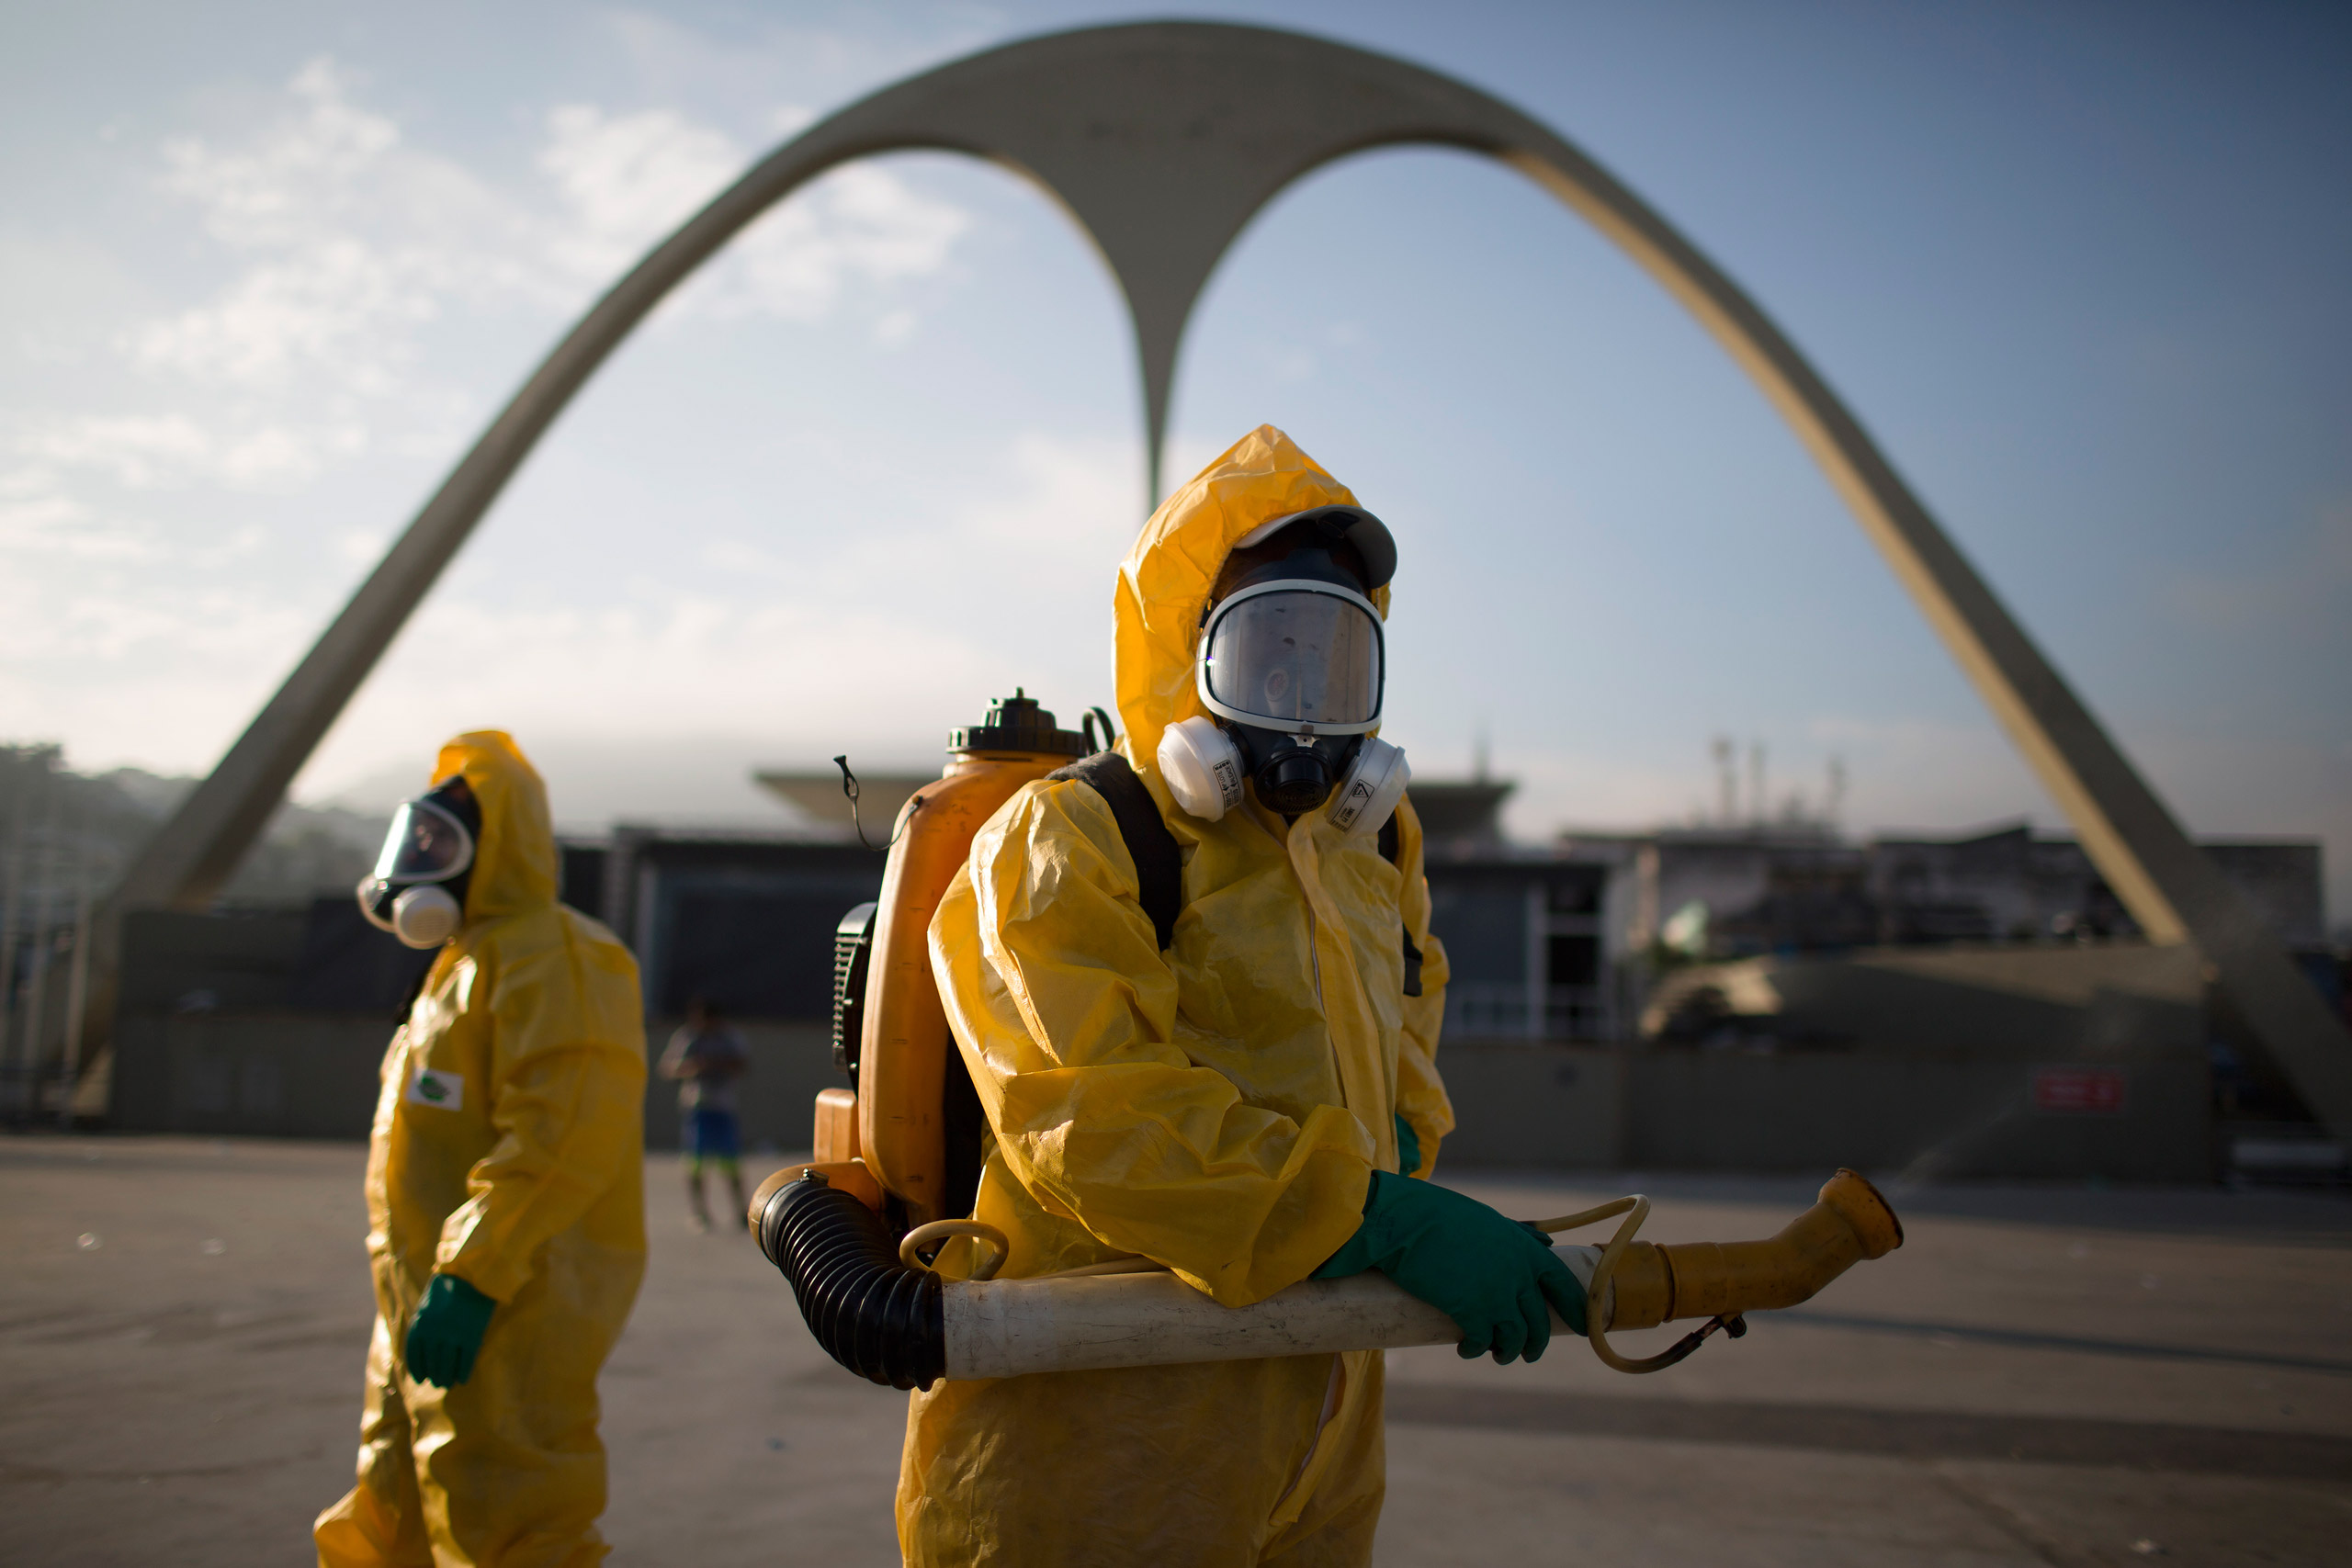 Health workers stand in the Sambadrome spraying insecticide to combat the Aedes aegypti mosquito that transmits the Zika virus in Rio de Janeiro on Jan. 26, 2016.